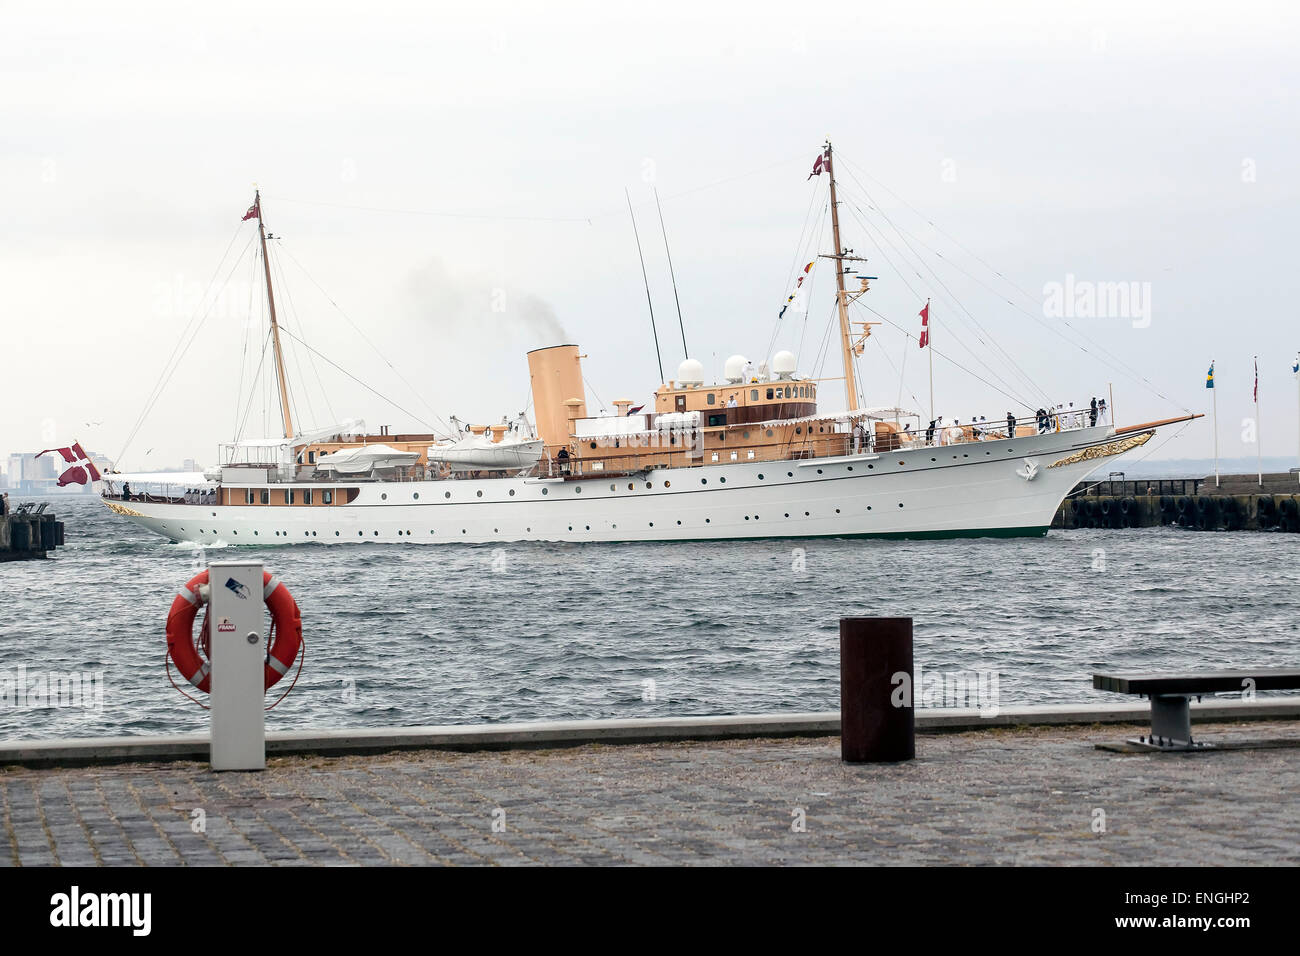 Helsingore, Denmark. 5th May, 2015. The royal ship, Dannebrog, arrives to Helsingore after 2 hours sailing from - Stock Image